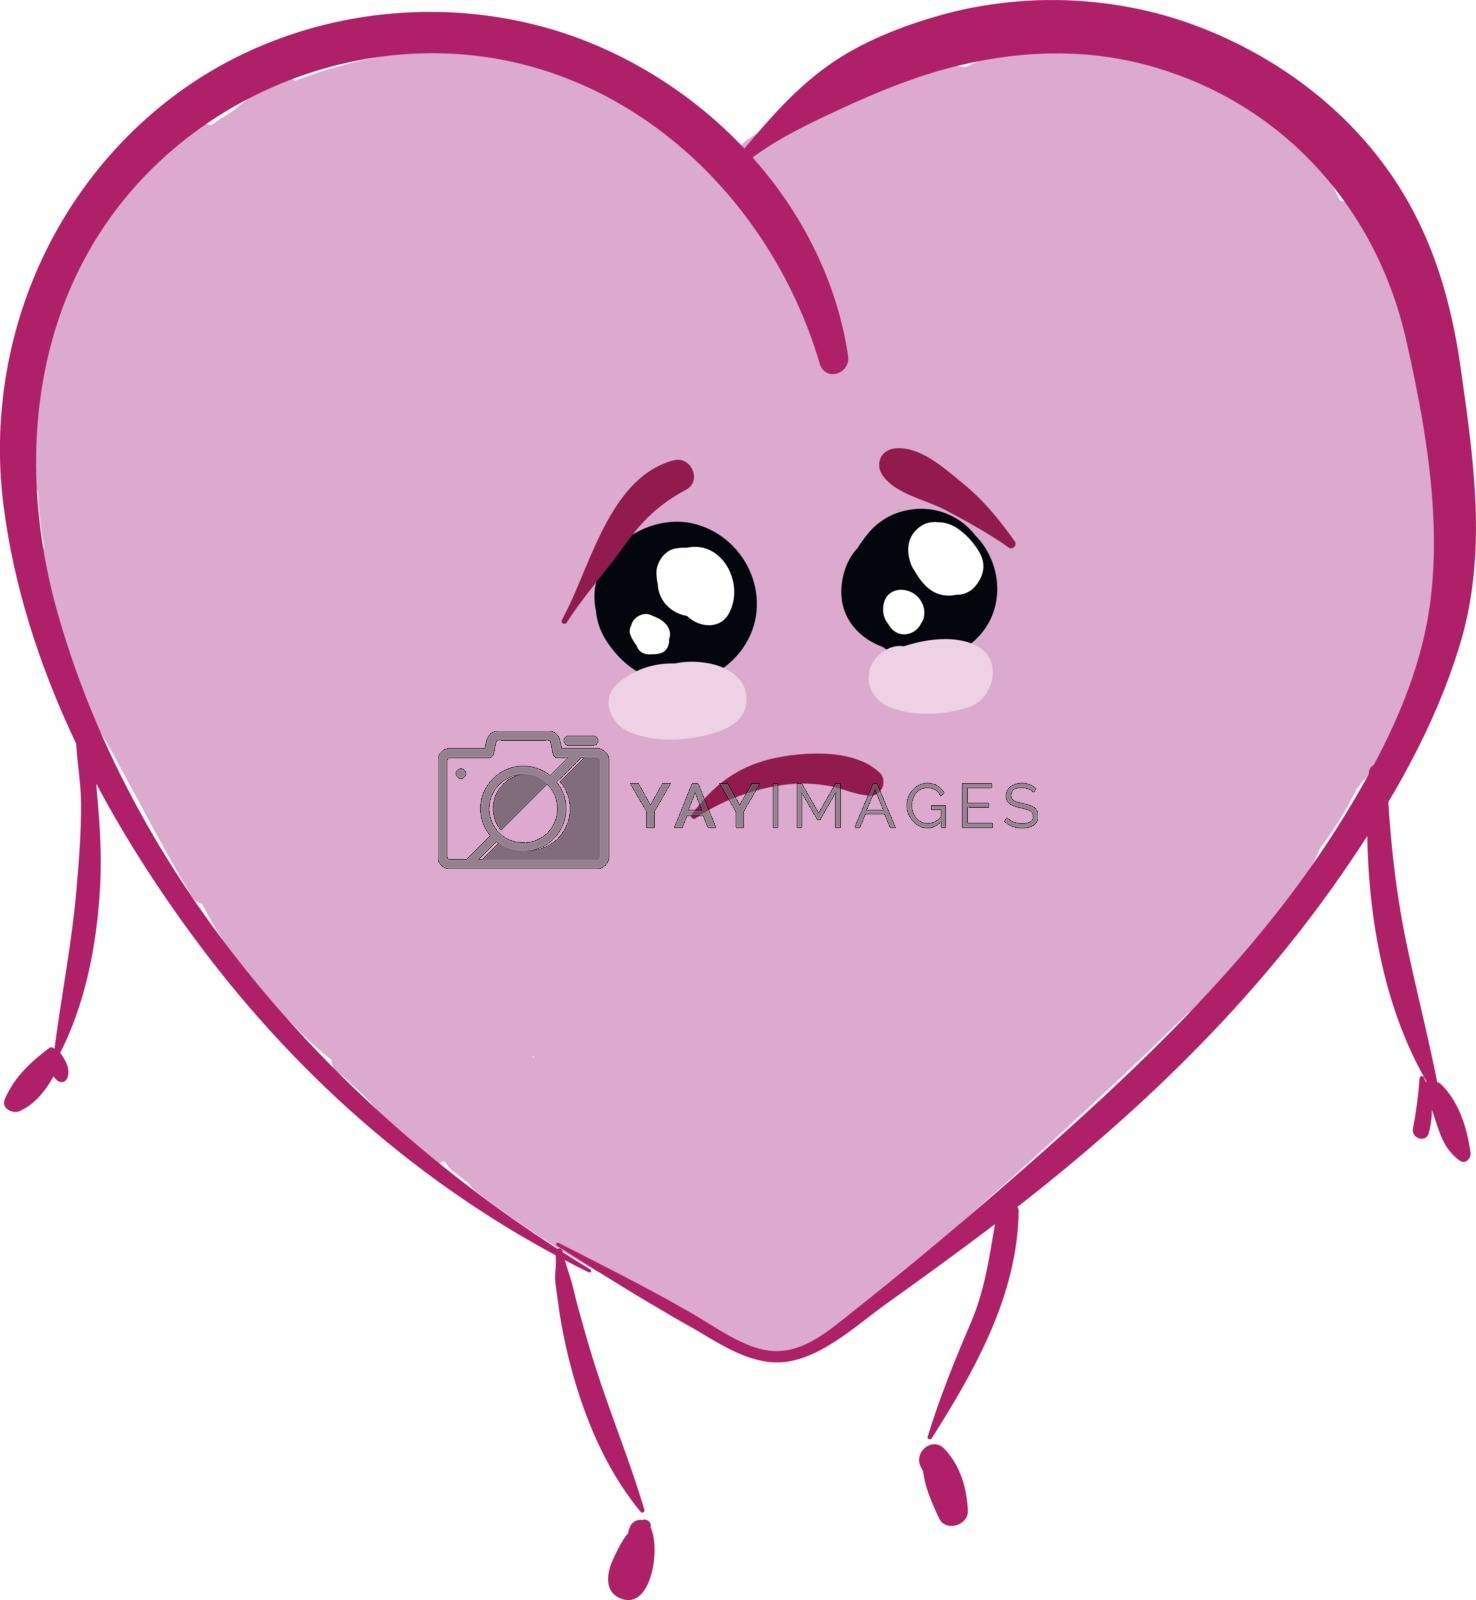 Royalty free image of Emoji of a sad rose-colored heart set on isolated white backgrou by Morphart